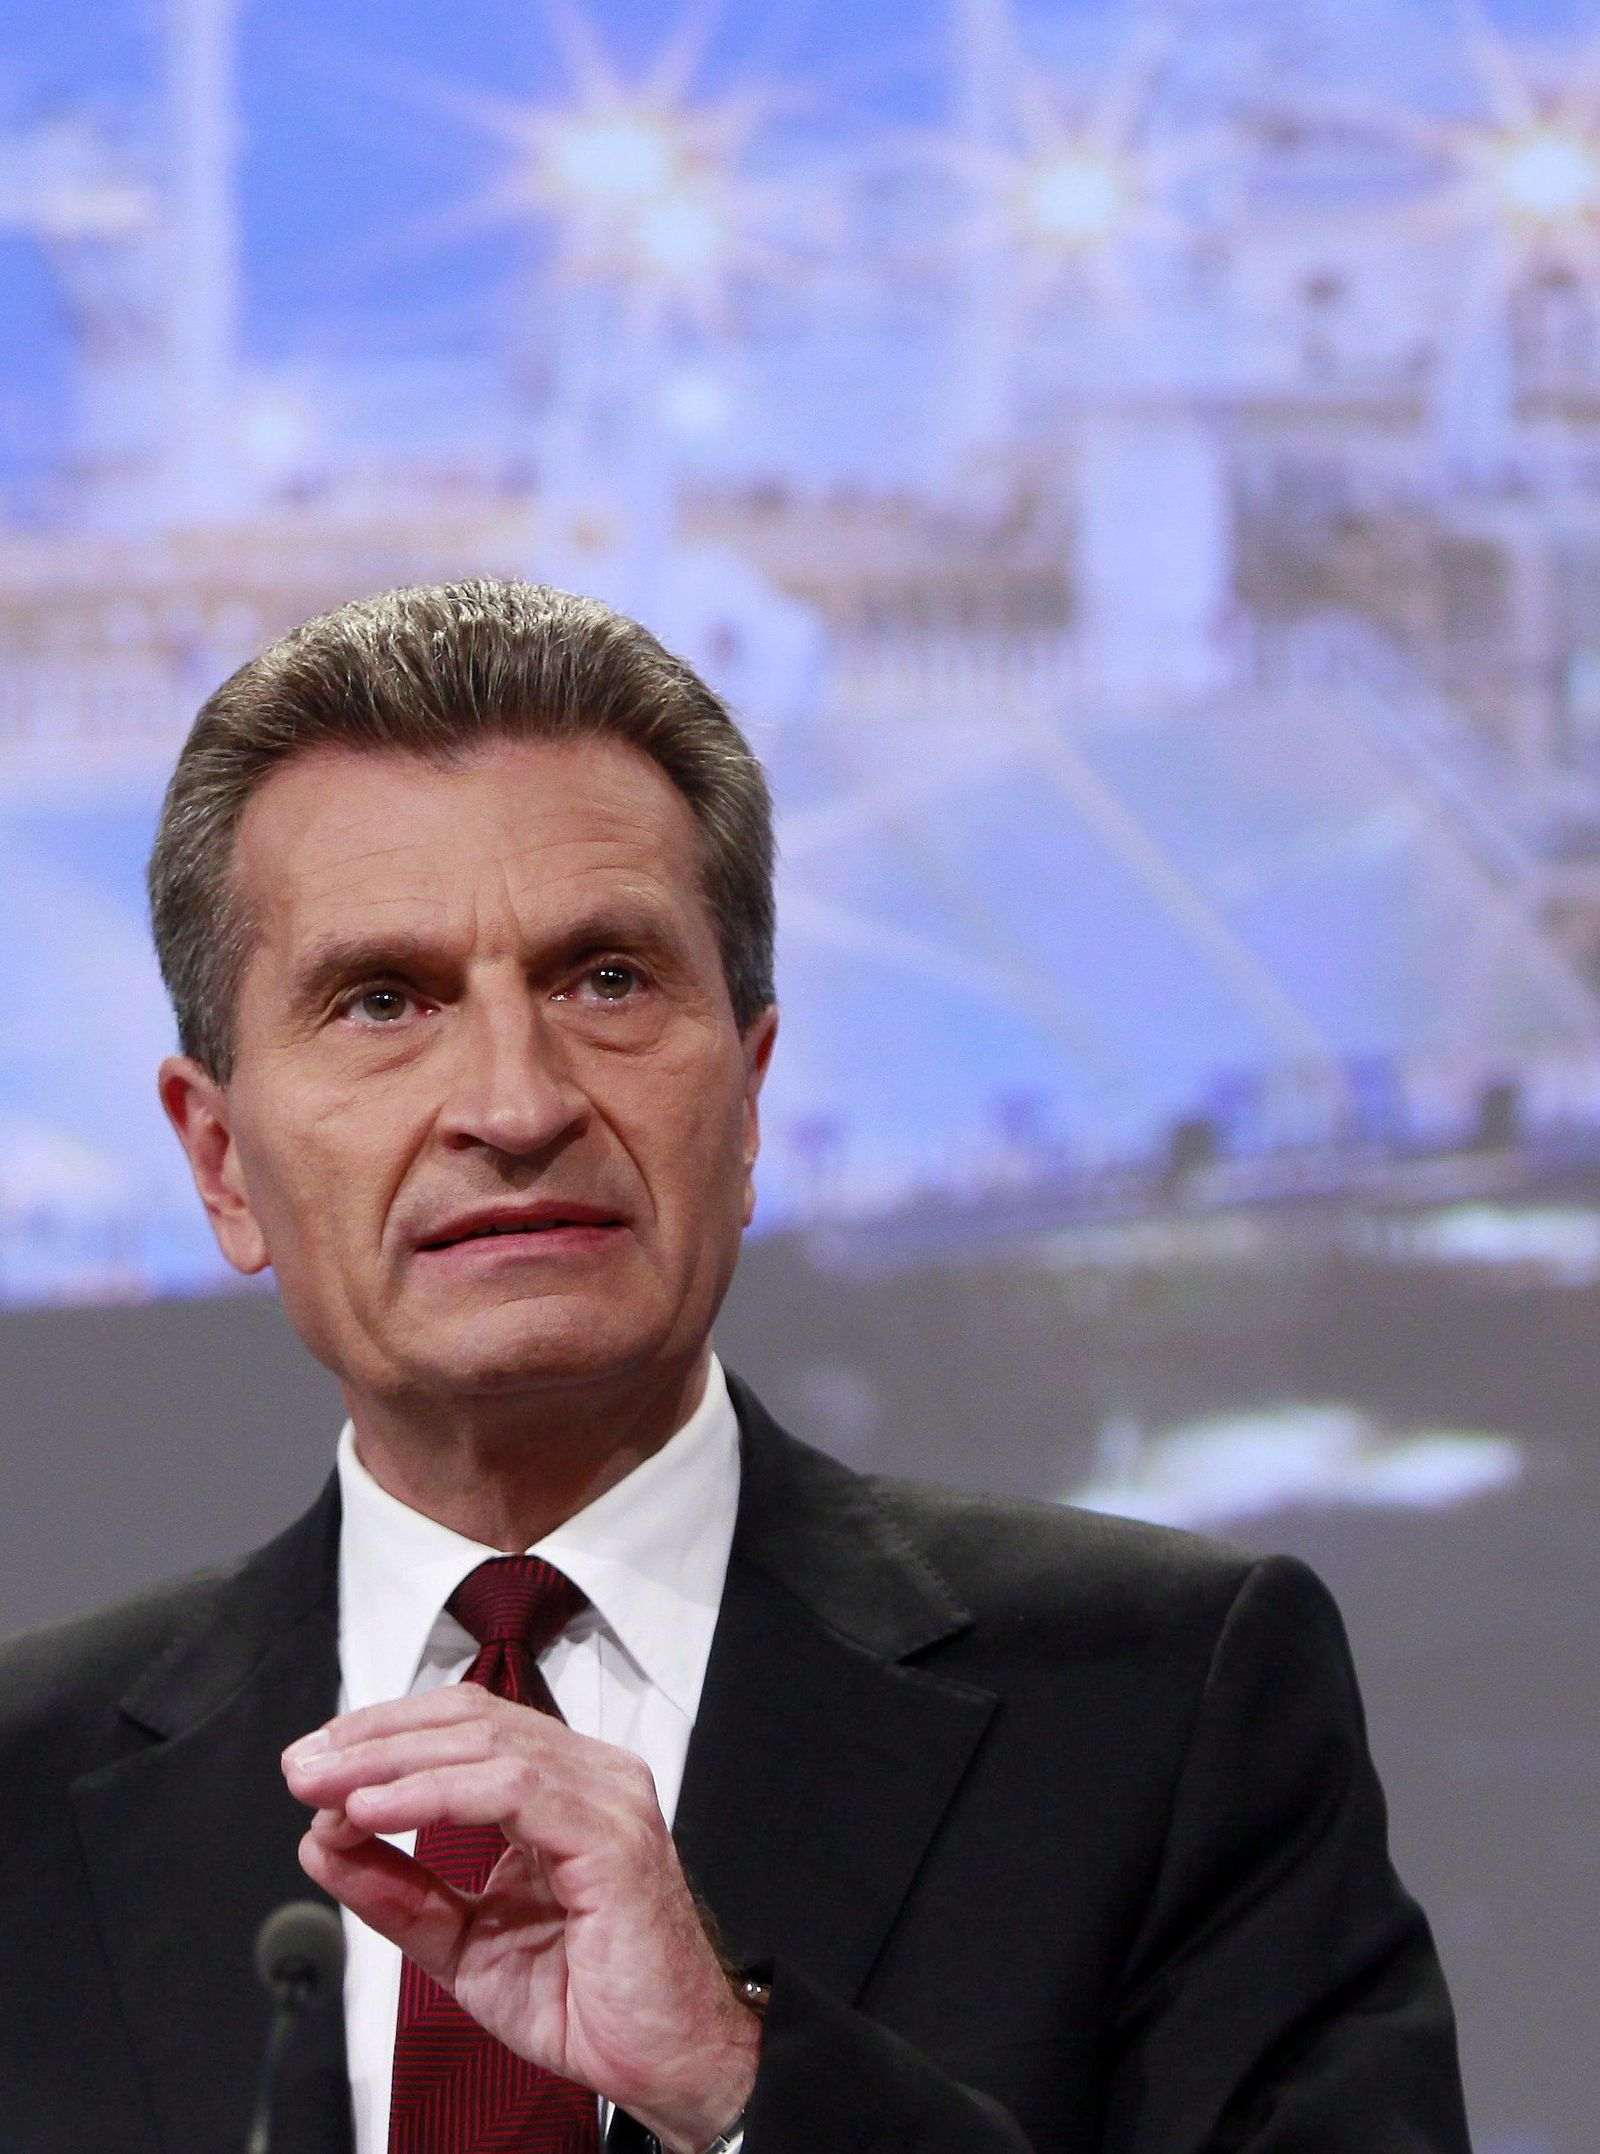 EU Commissioner Oettinger speaks during a news conference on secu